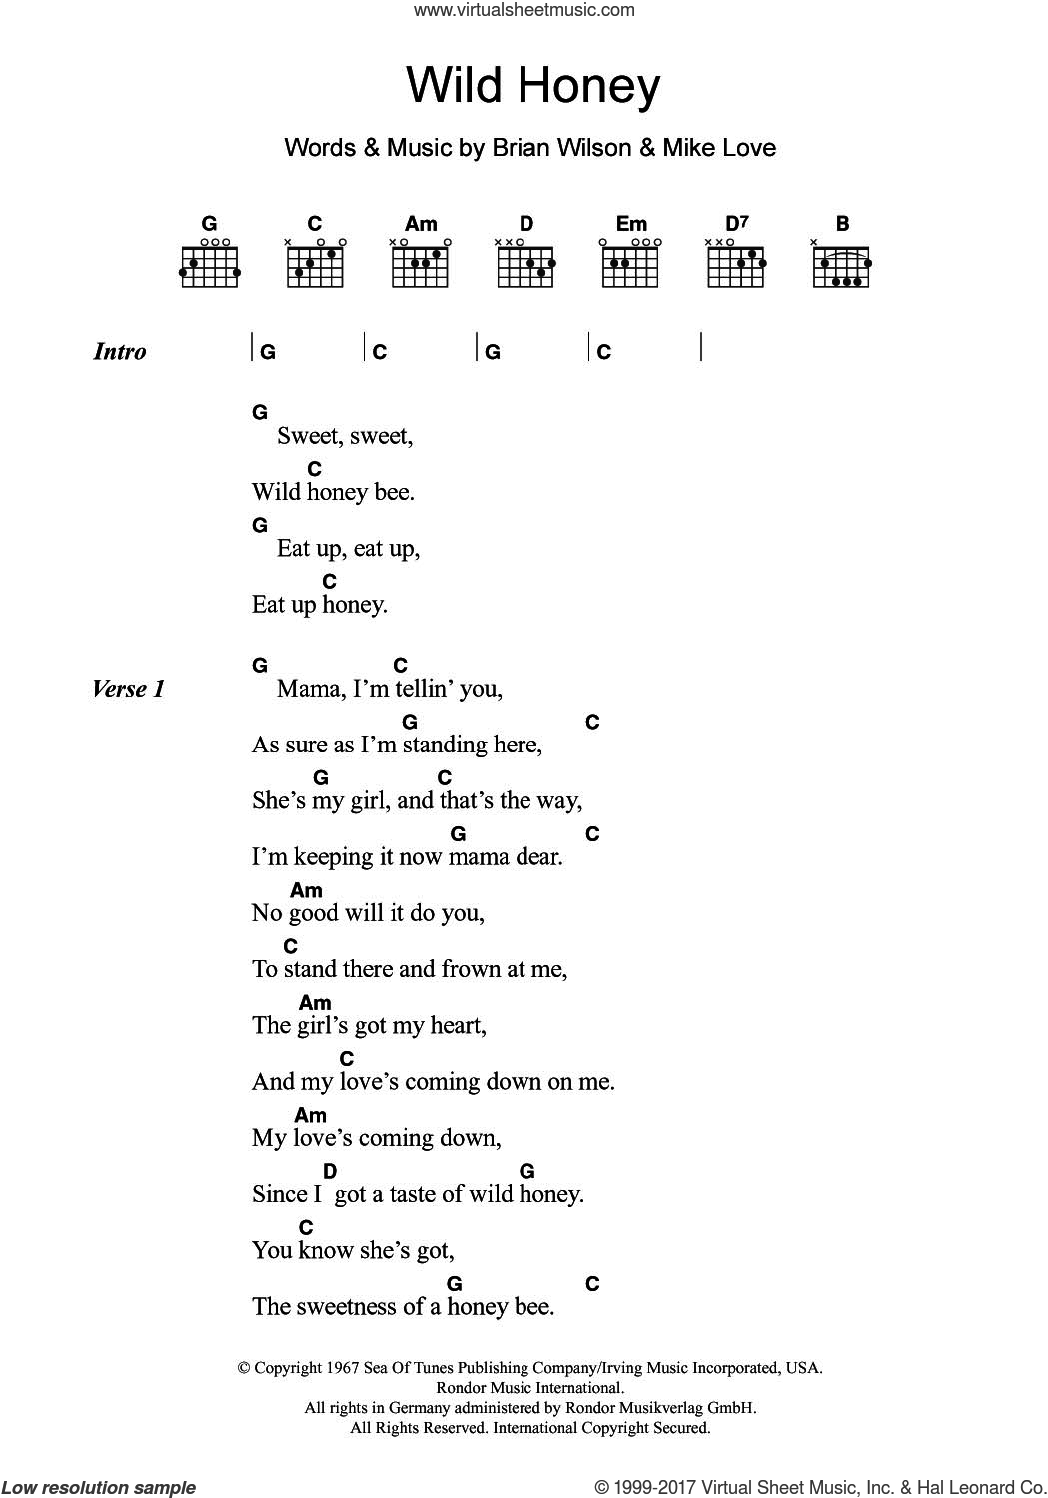 Wild Honey sheet music for guitar (chords) by The Beach Boys, Brian Wilson and Mike Love, intermediate skill level